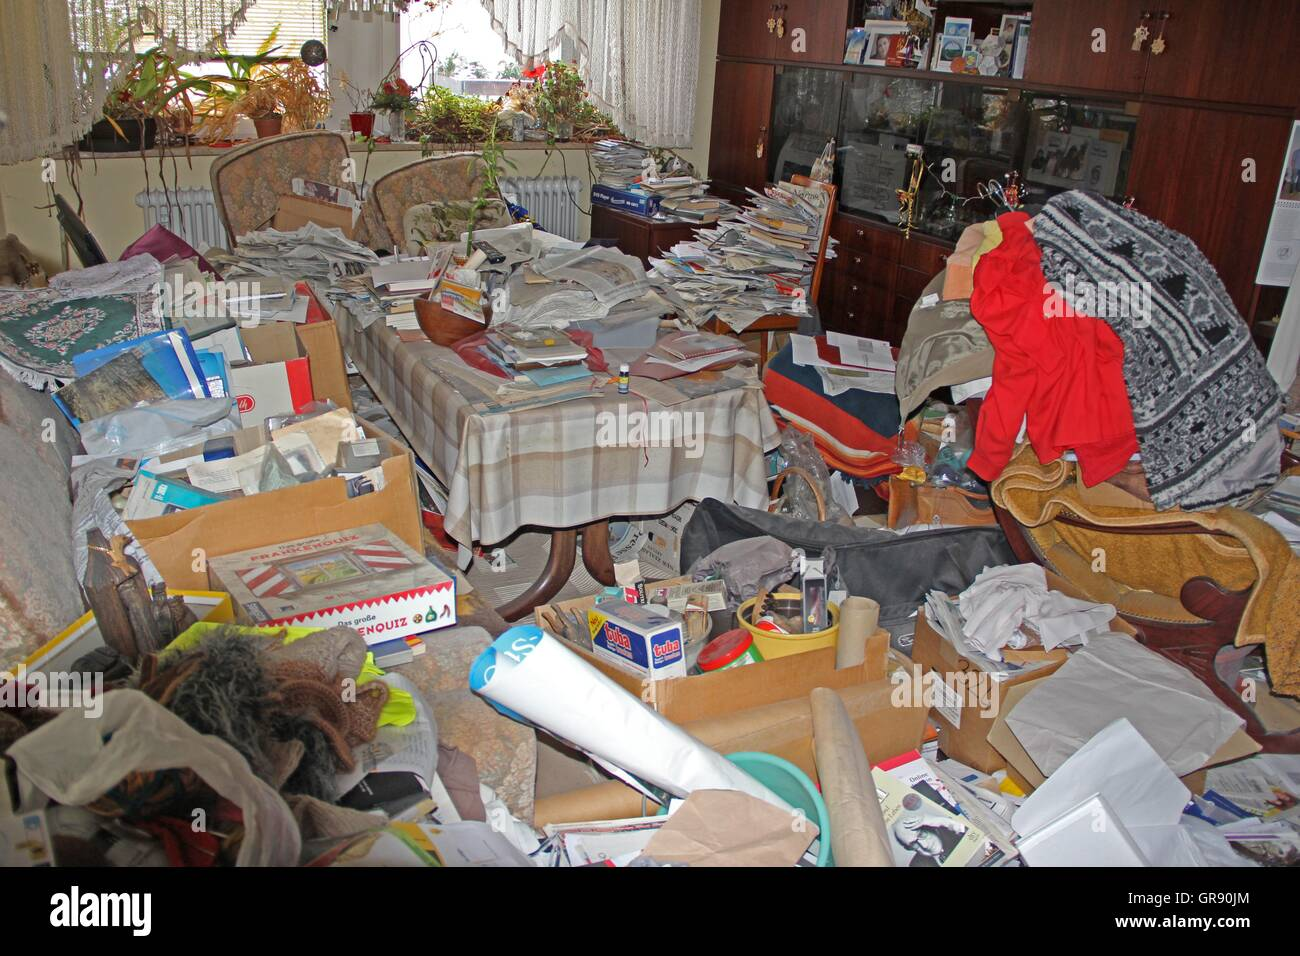 Total Littering Apartment - Stock Image